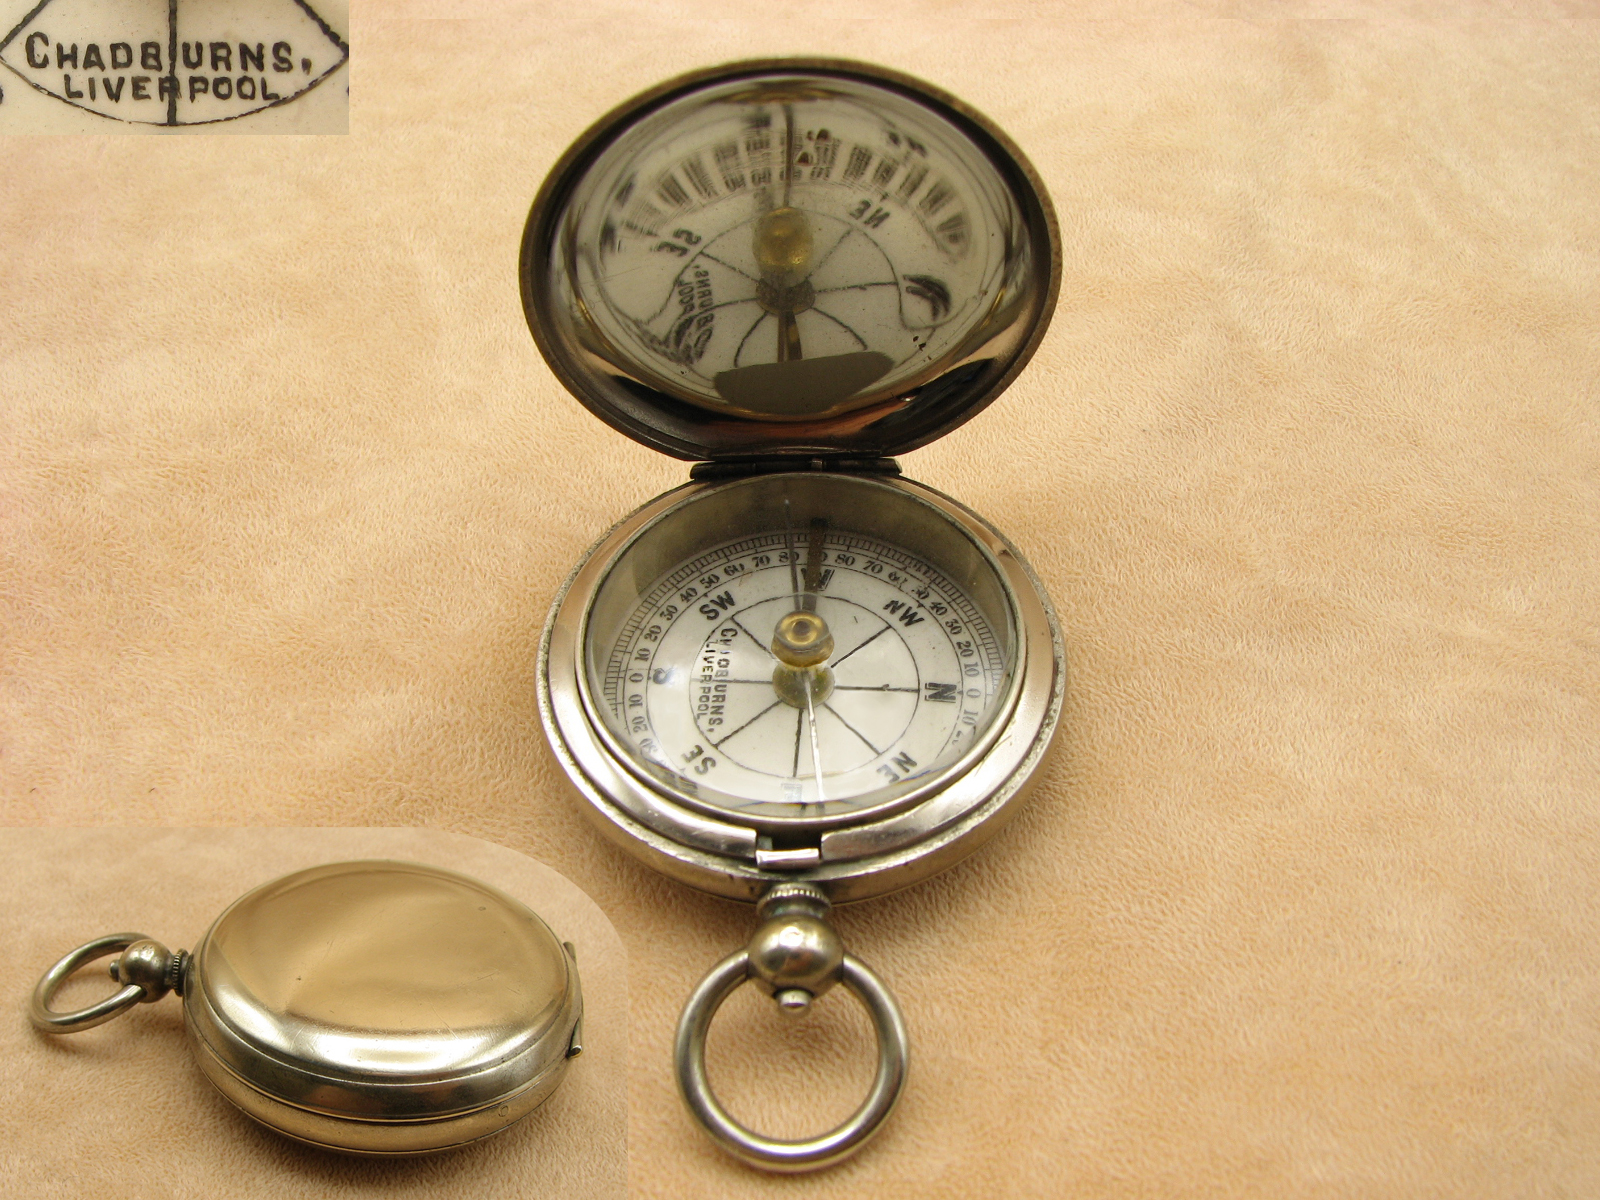 Antique hunter cased pocket compass signed 'Chadburns Liverpool'